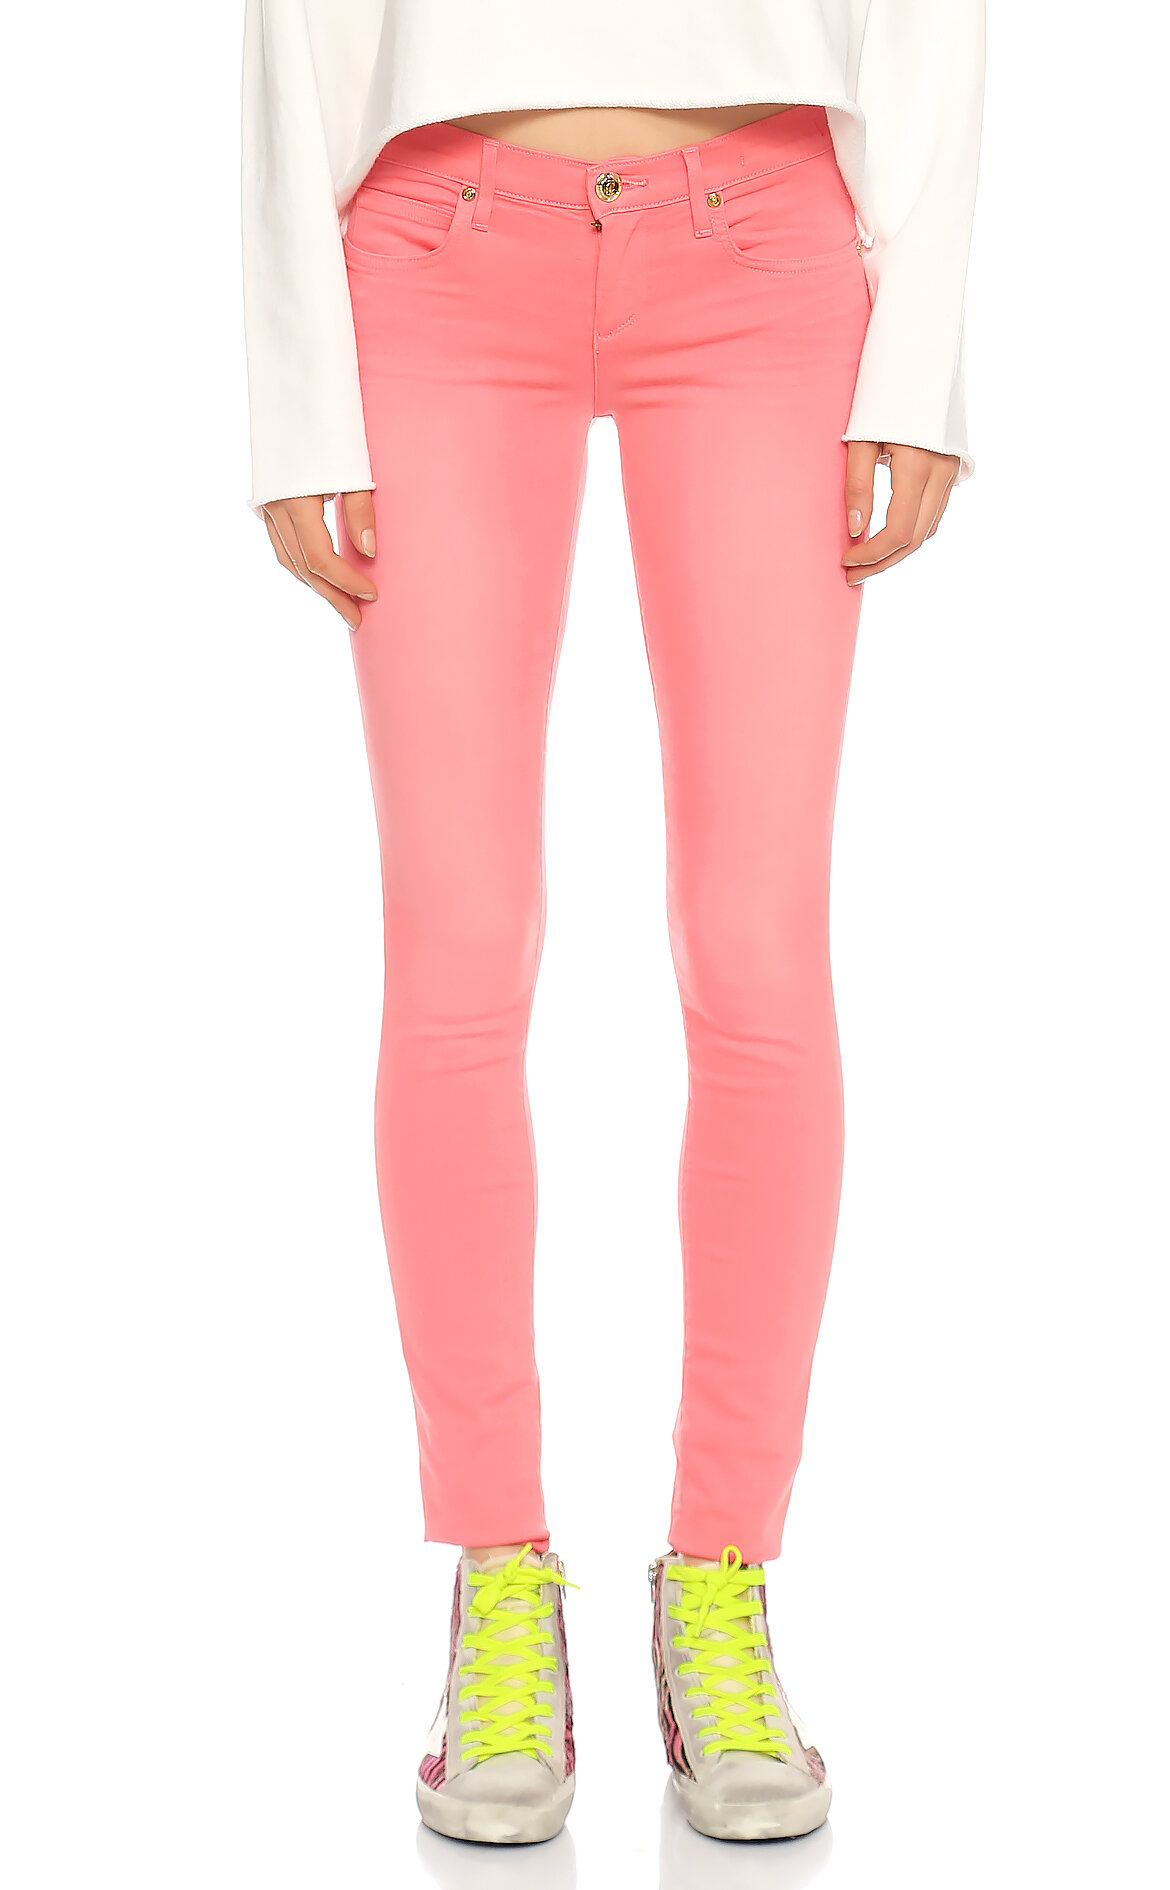 Juicy Couture-Juicy Couture Skinny Jean Pembe  Pantolon